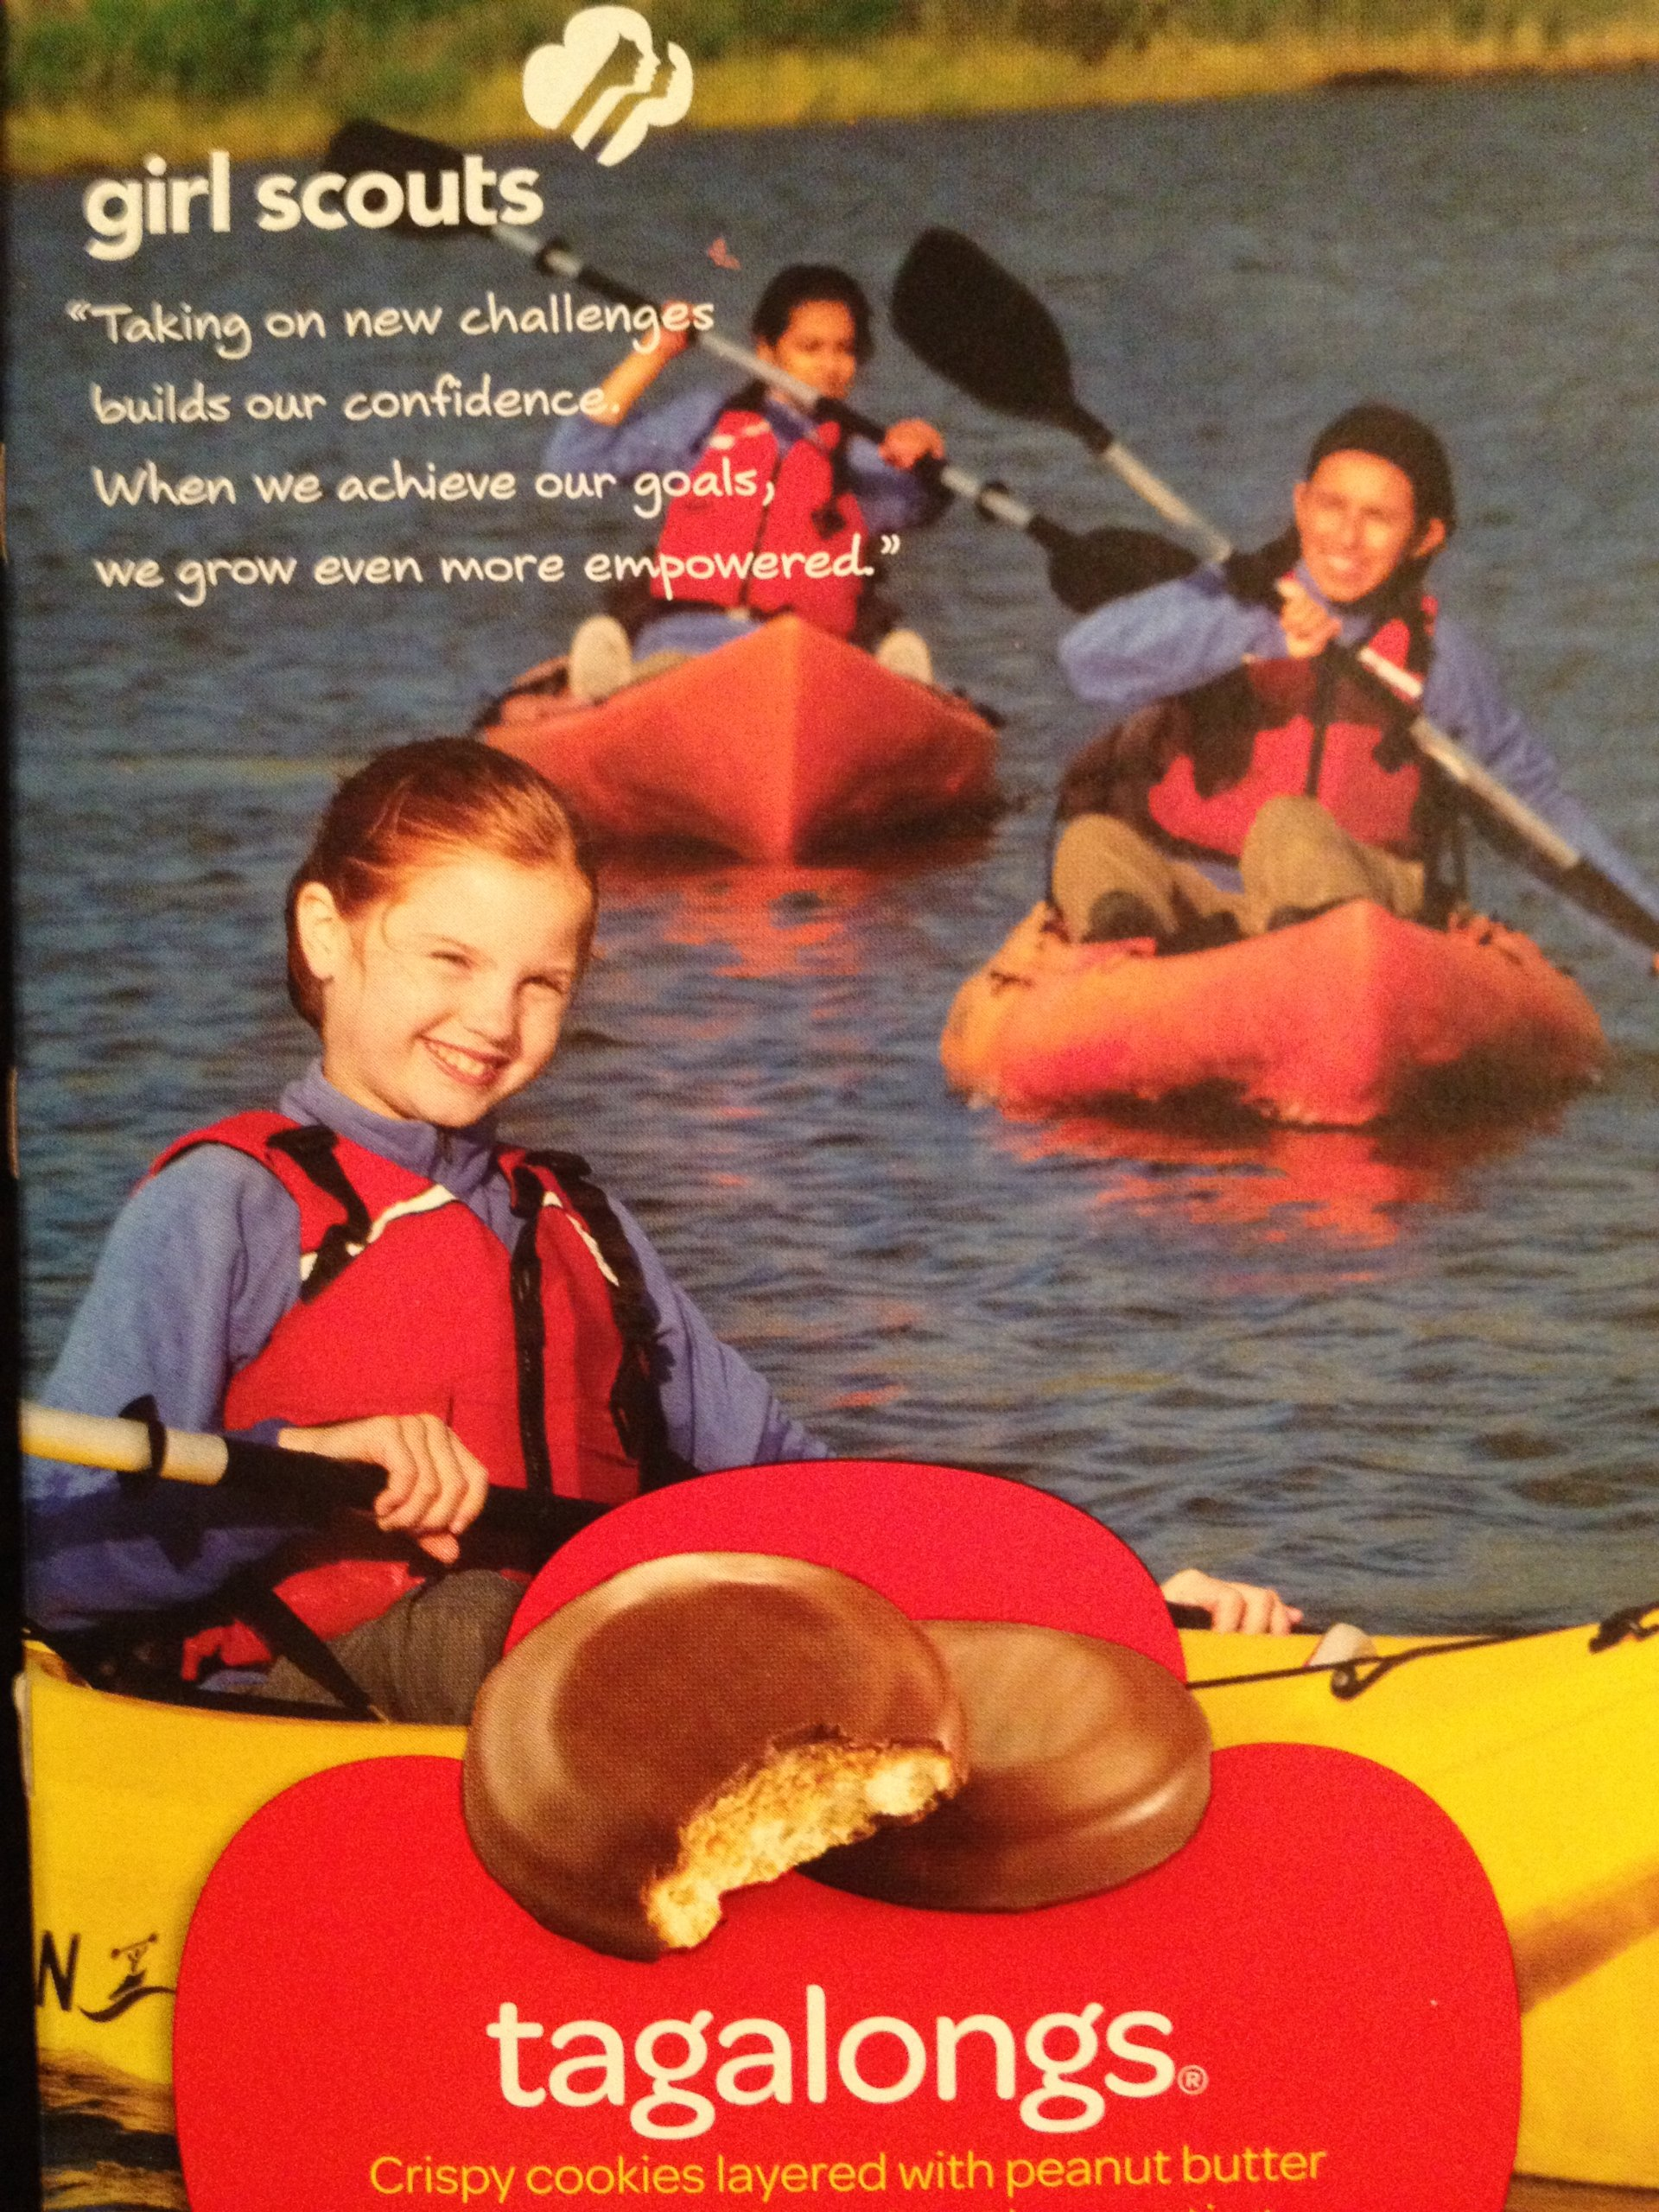 GIRL SCOUT COOKIES Tagalongs (14 per box) Full Case of 12 boxes by Girl Scouts (Image #1)